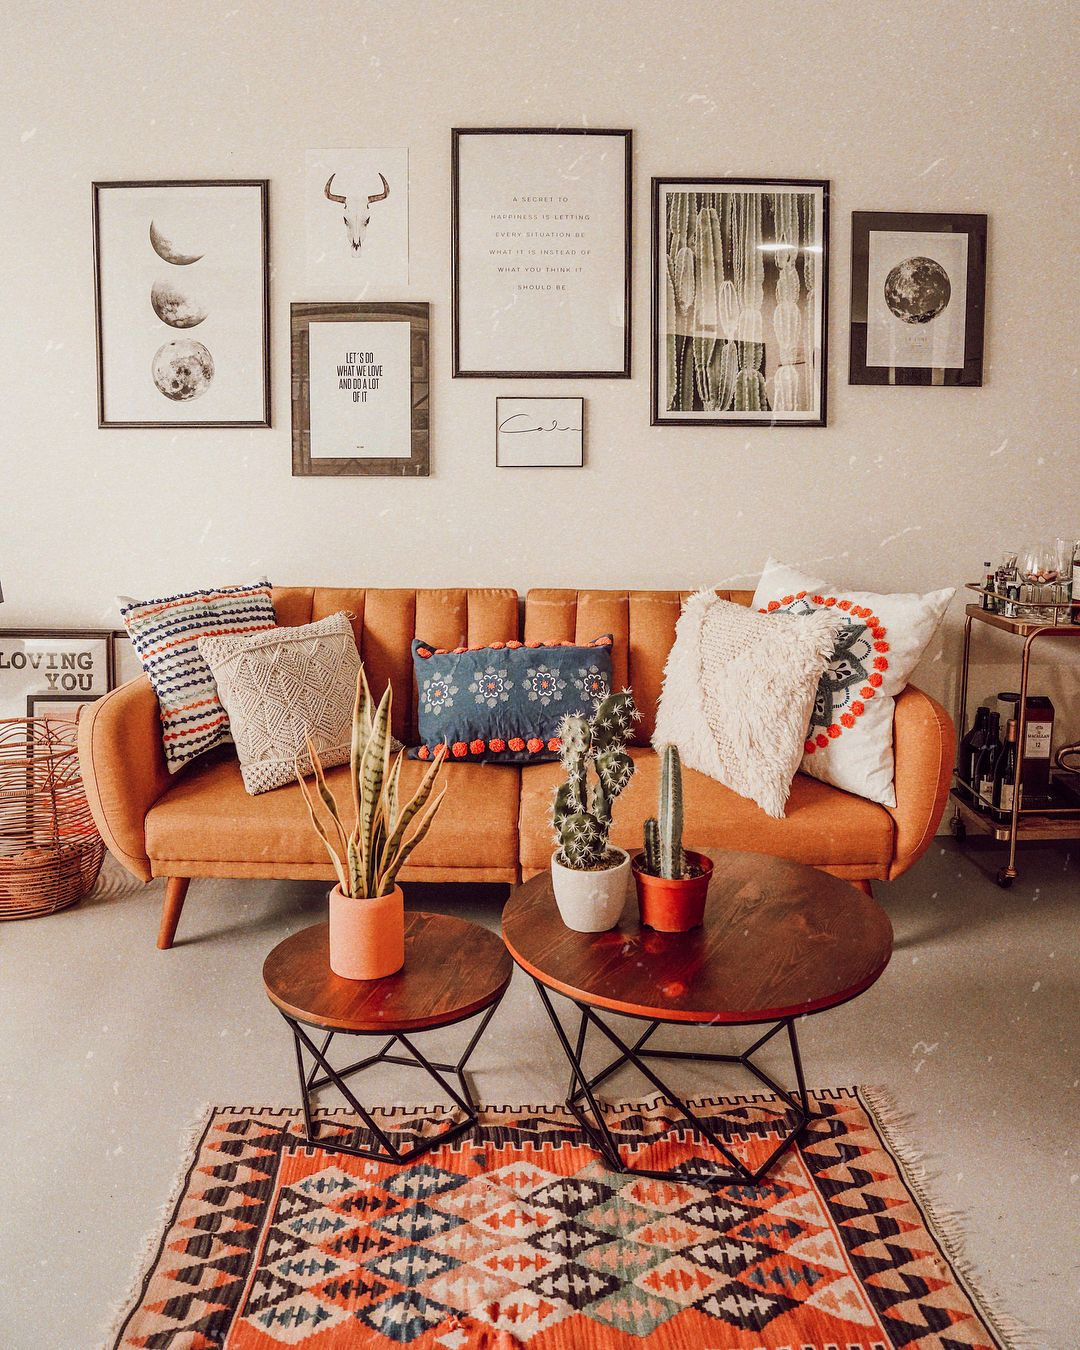 Living Room Decor Trends To Follow In 2018: 37.2k Followers, 720 Following, 570 Posts